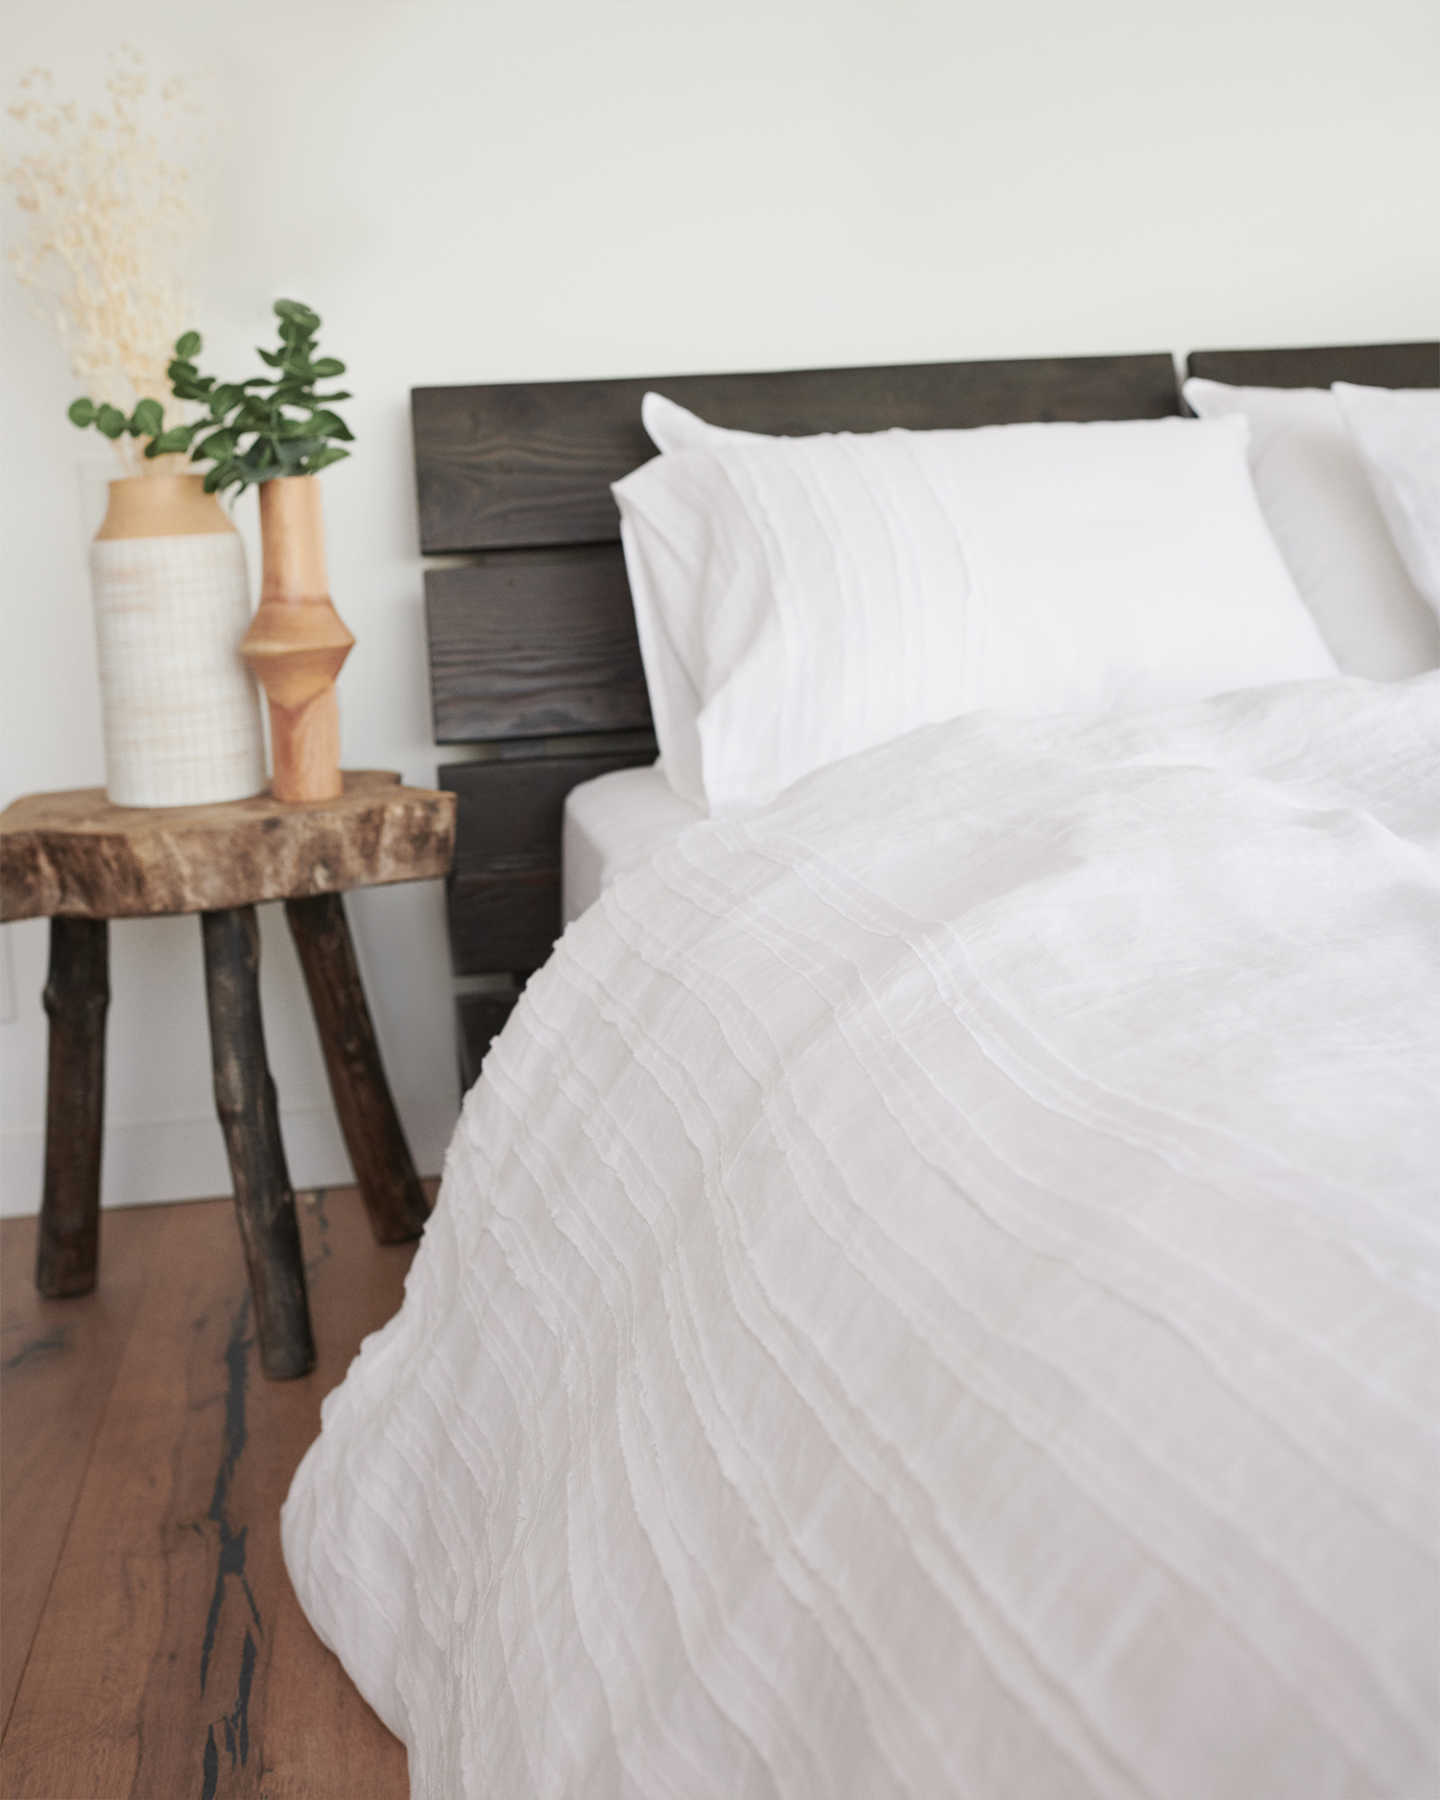 French Linen Duvet Cover Set - Rouching - 4